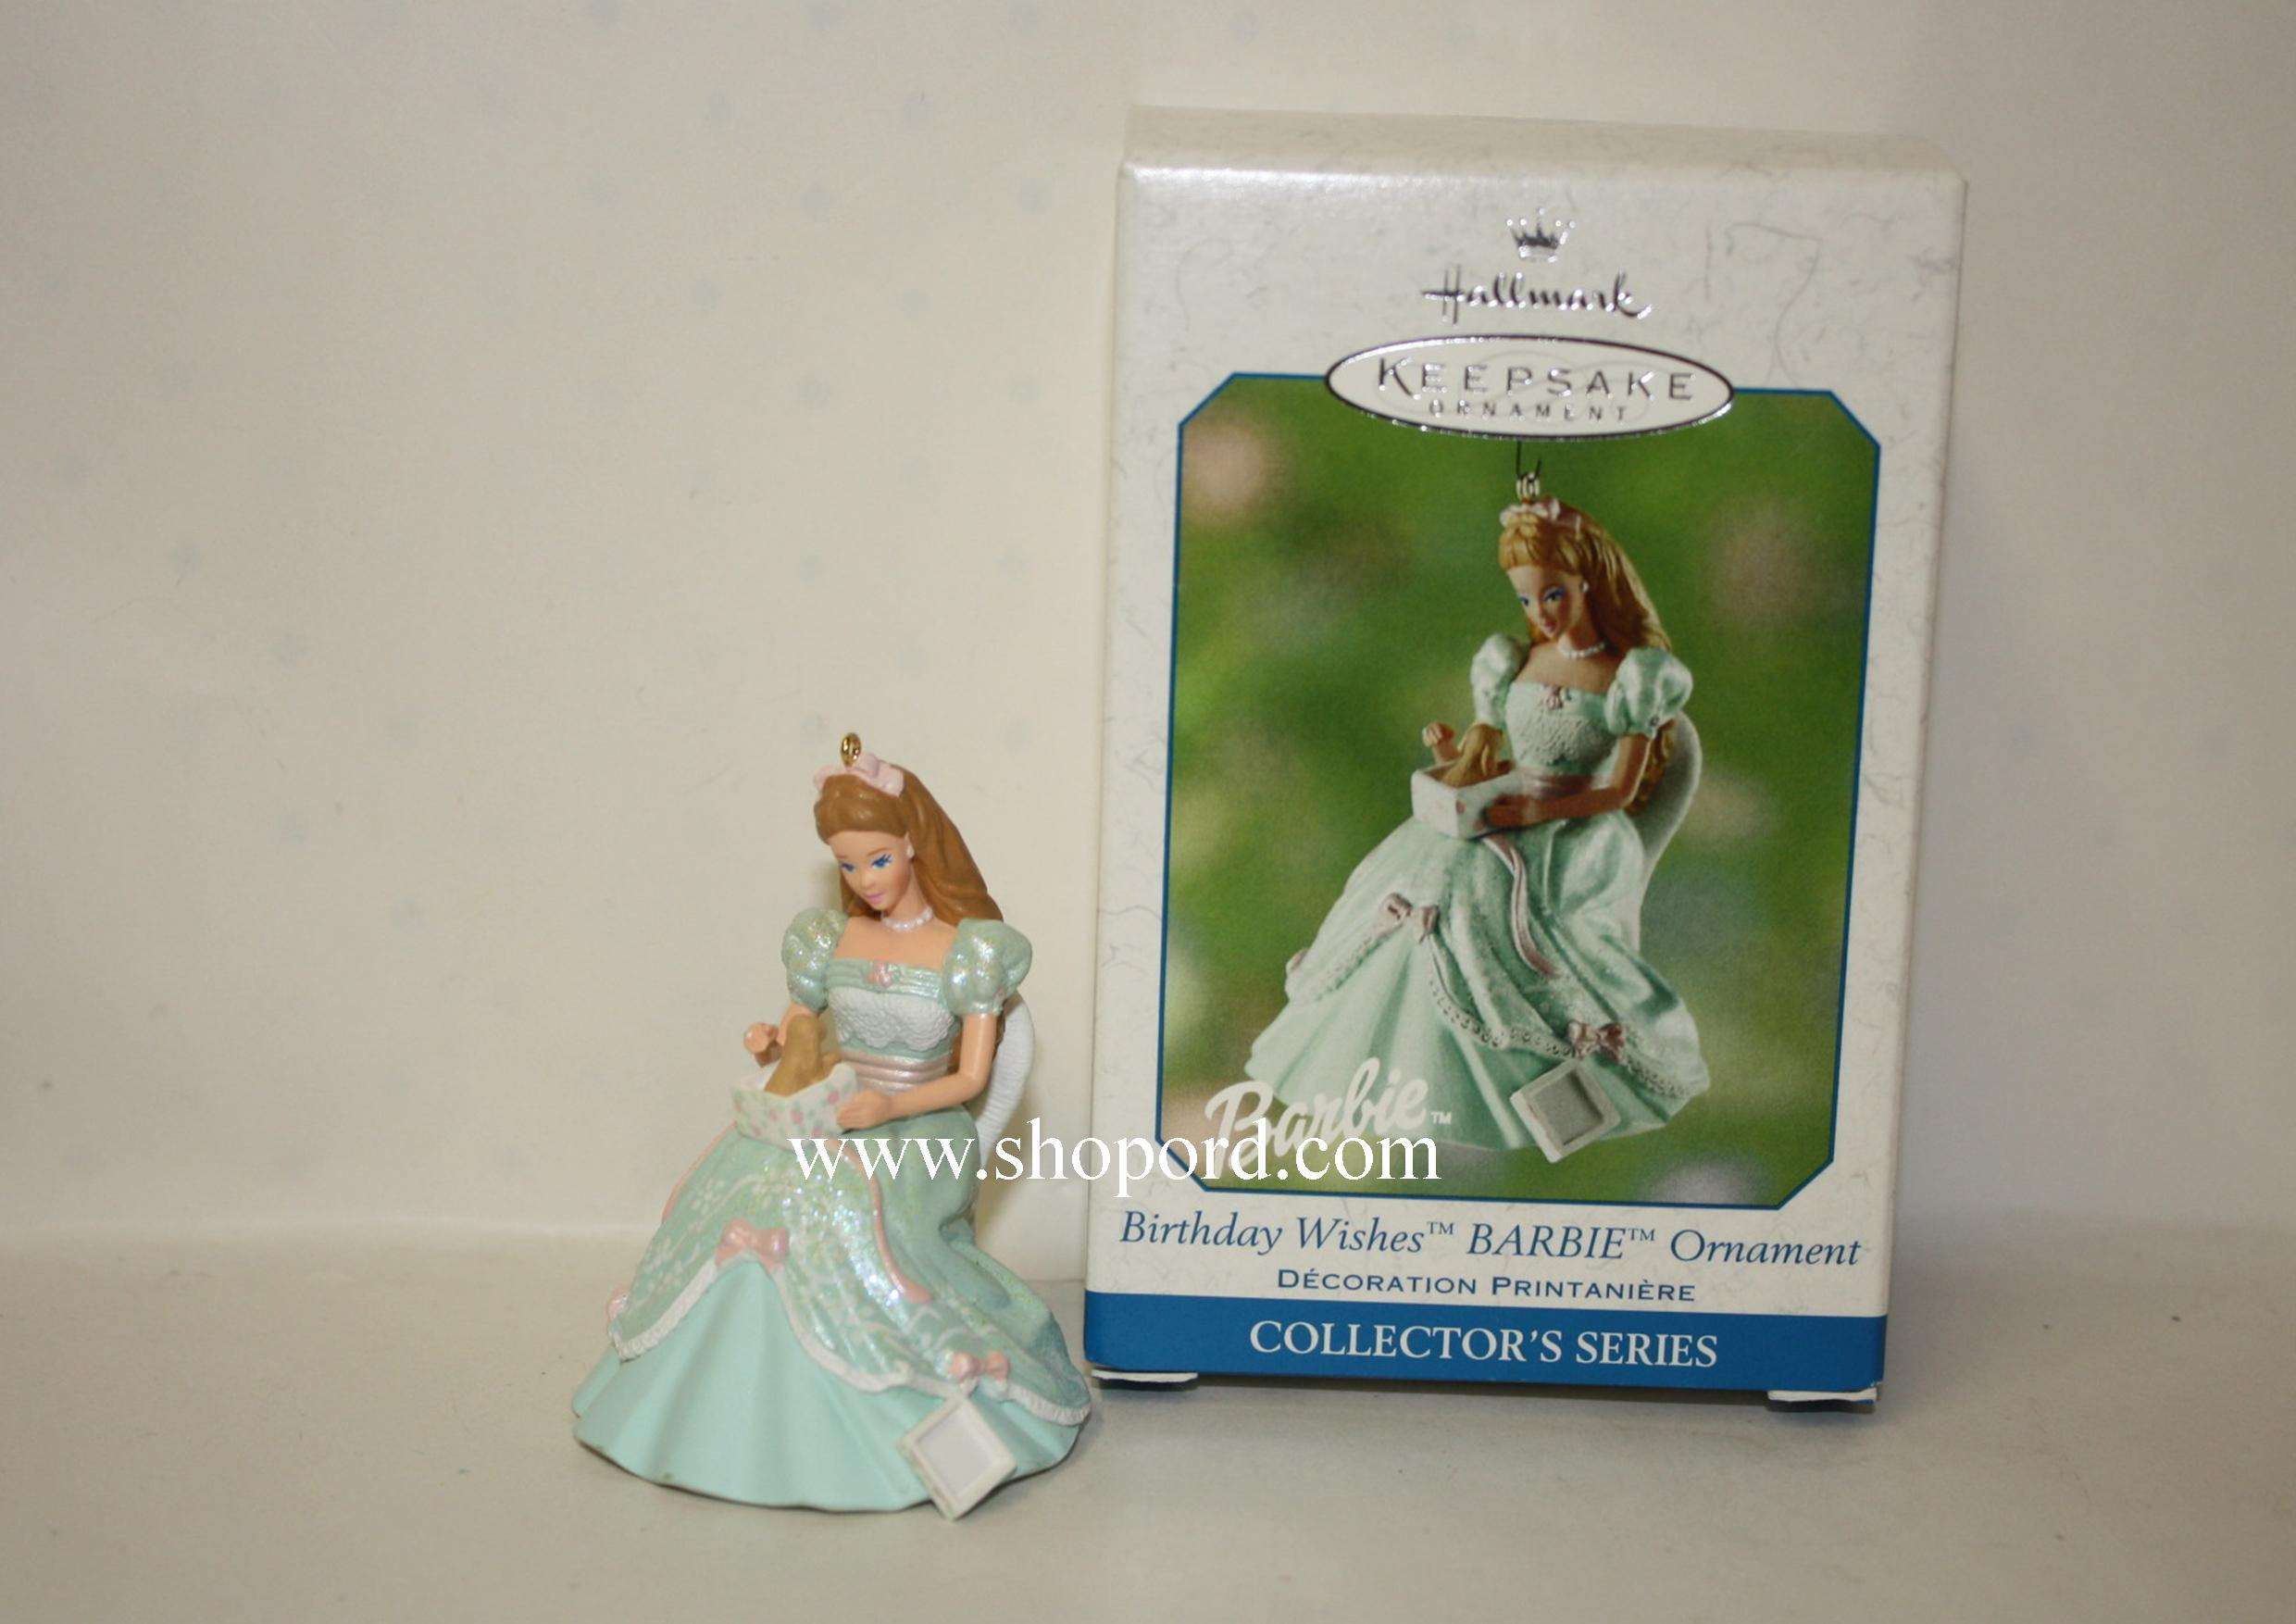 Hallmark 2002 Birthday Wishes Barbie Spring Ornament QEO8513